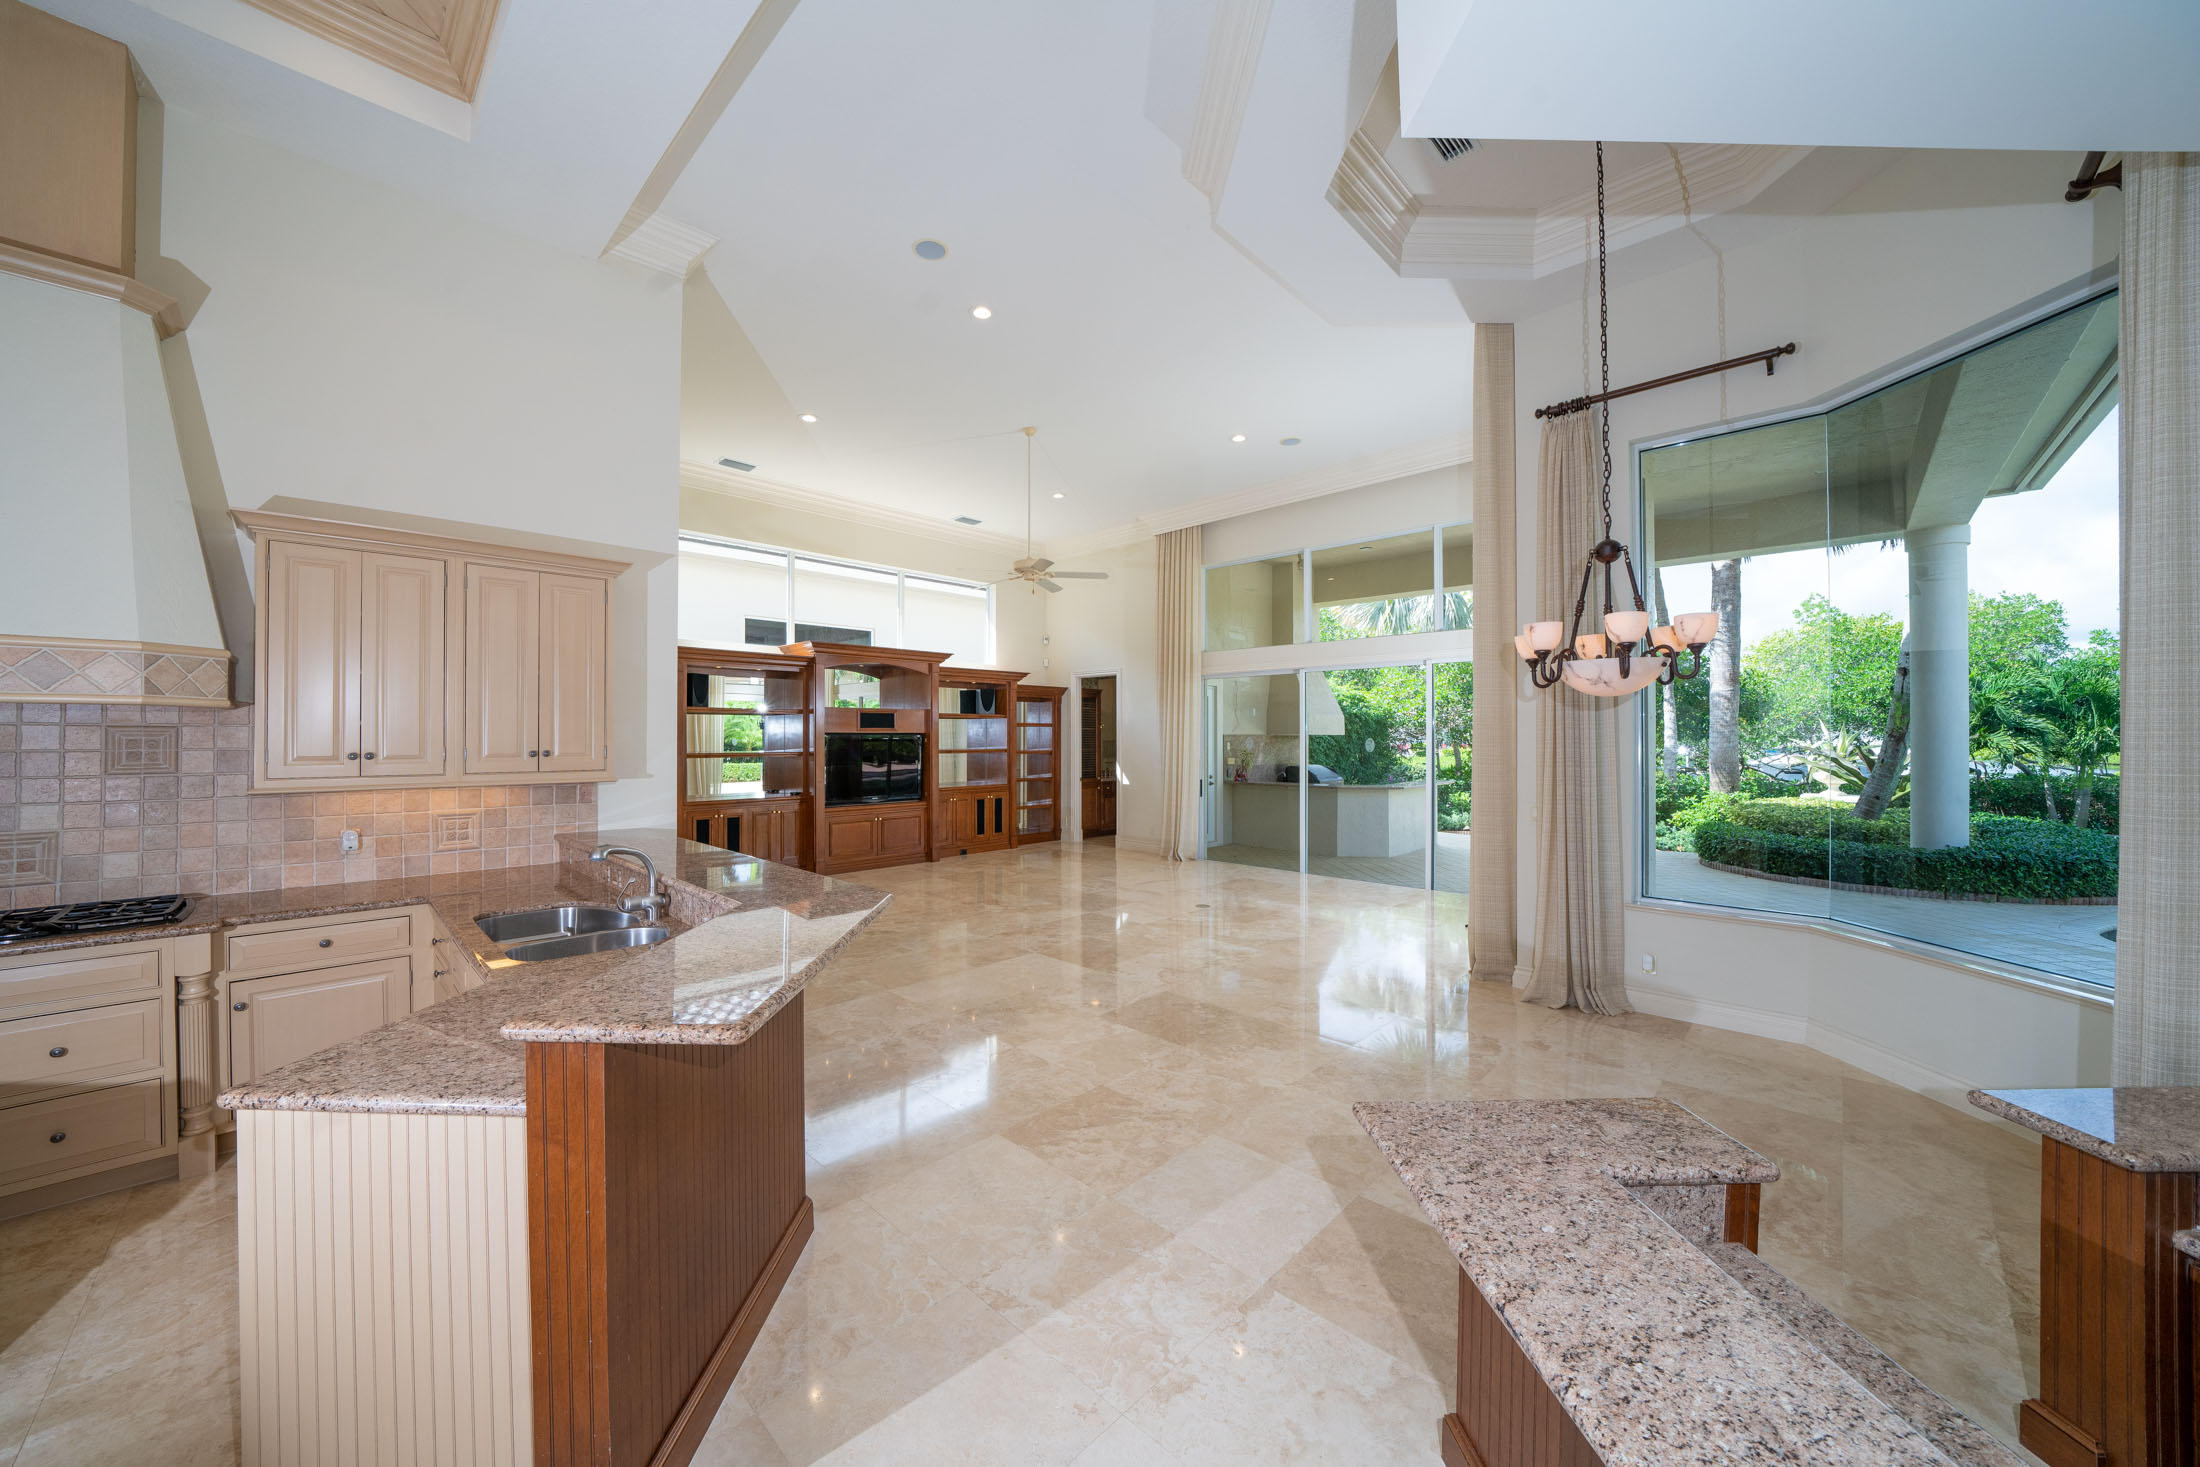 ISLANDS OF JUPITER HOMES